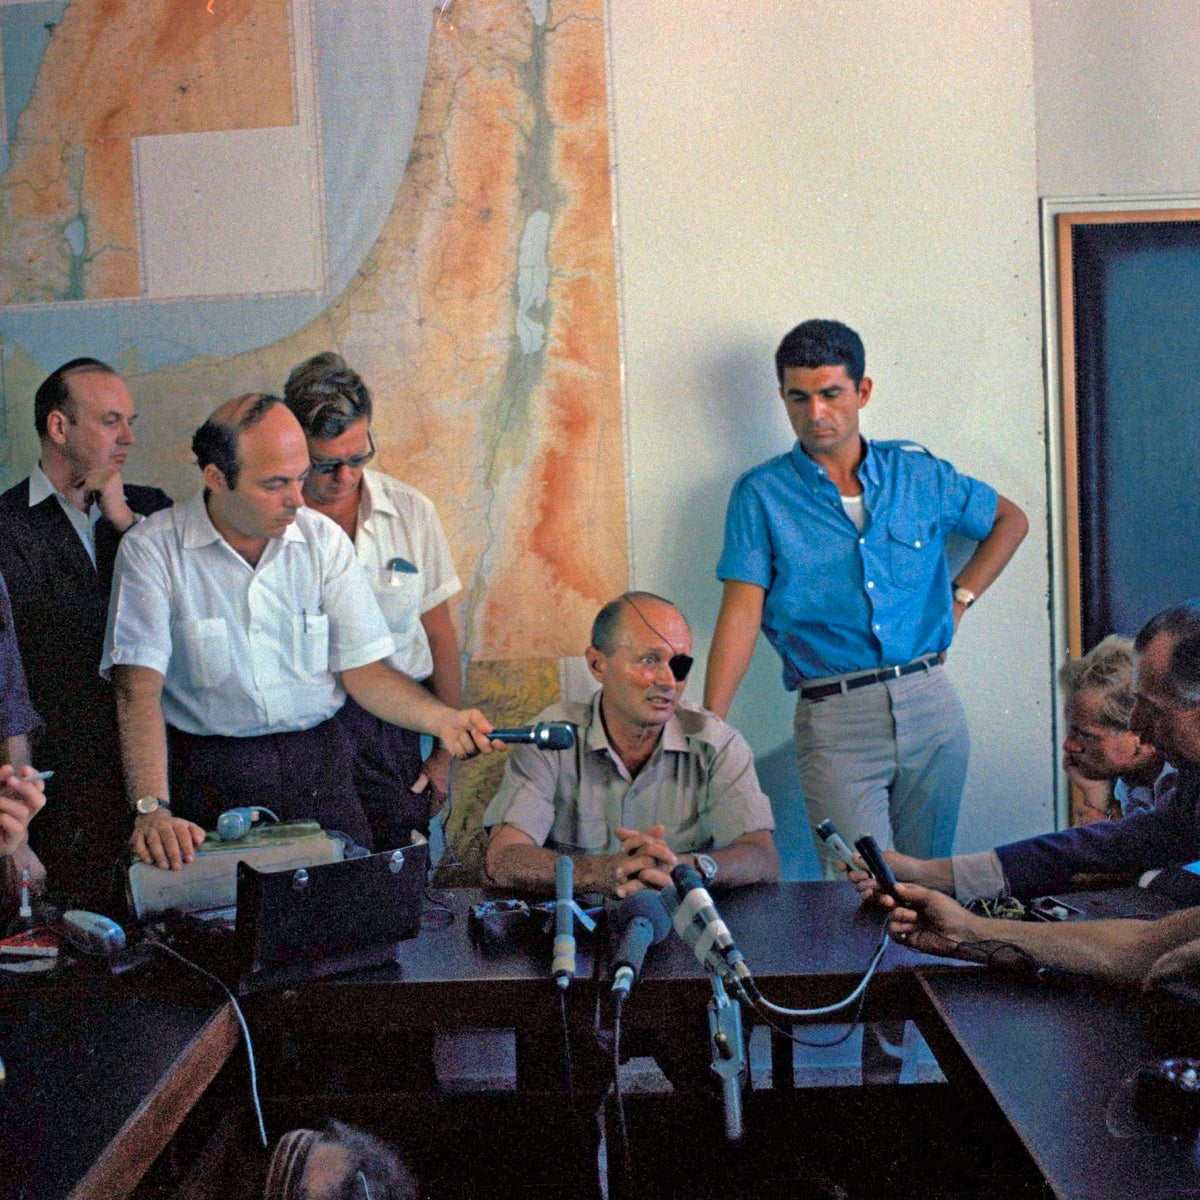 Six-Day War: Israeli Defense Minister Moshe Dayan speaking at a news conference at an unknown location, July 15, 1967.